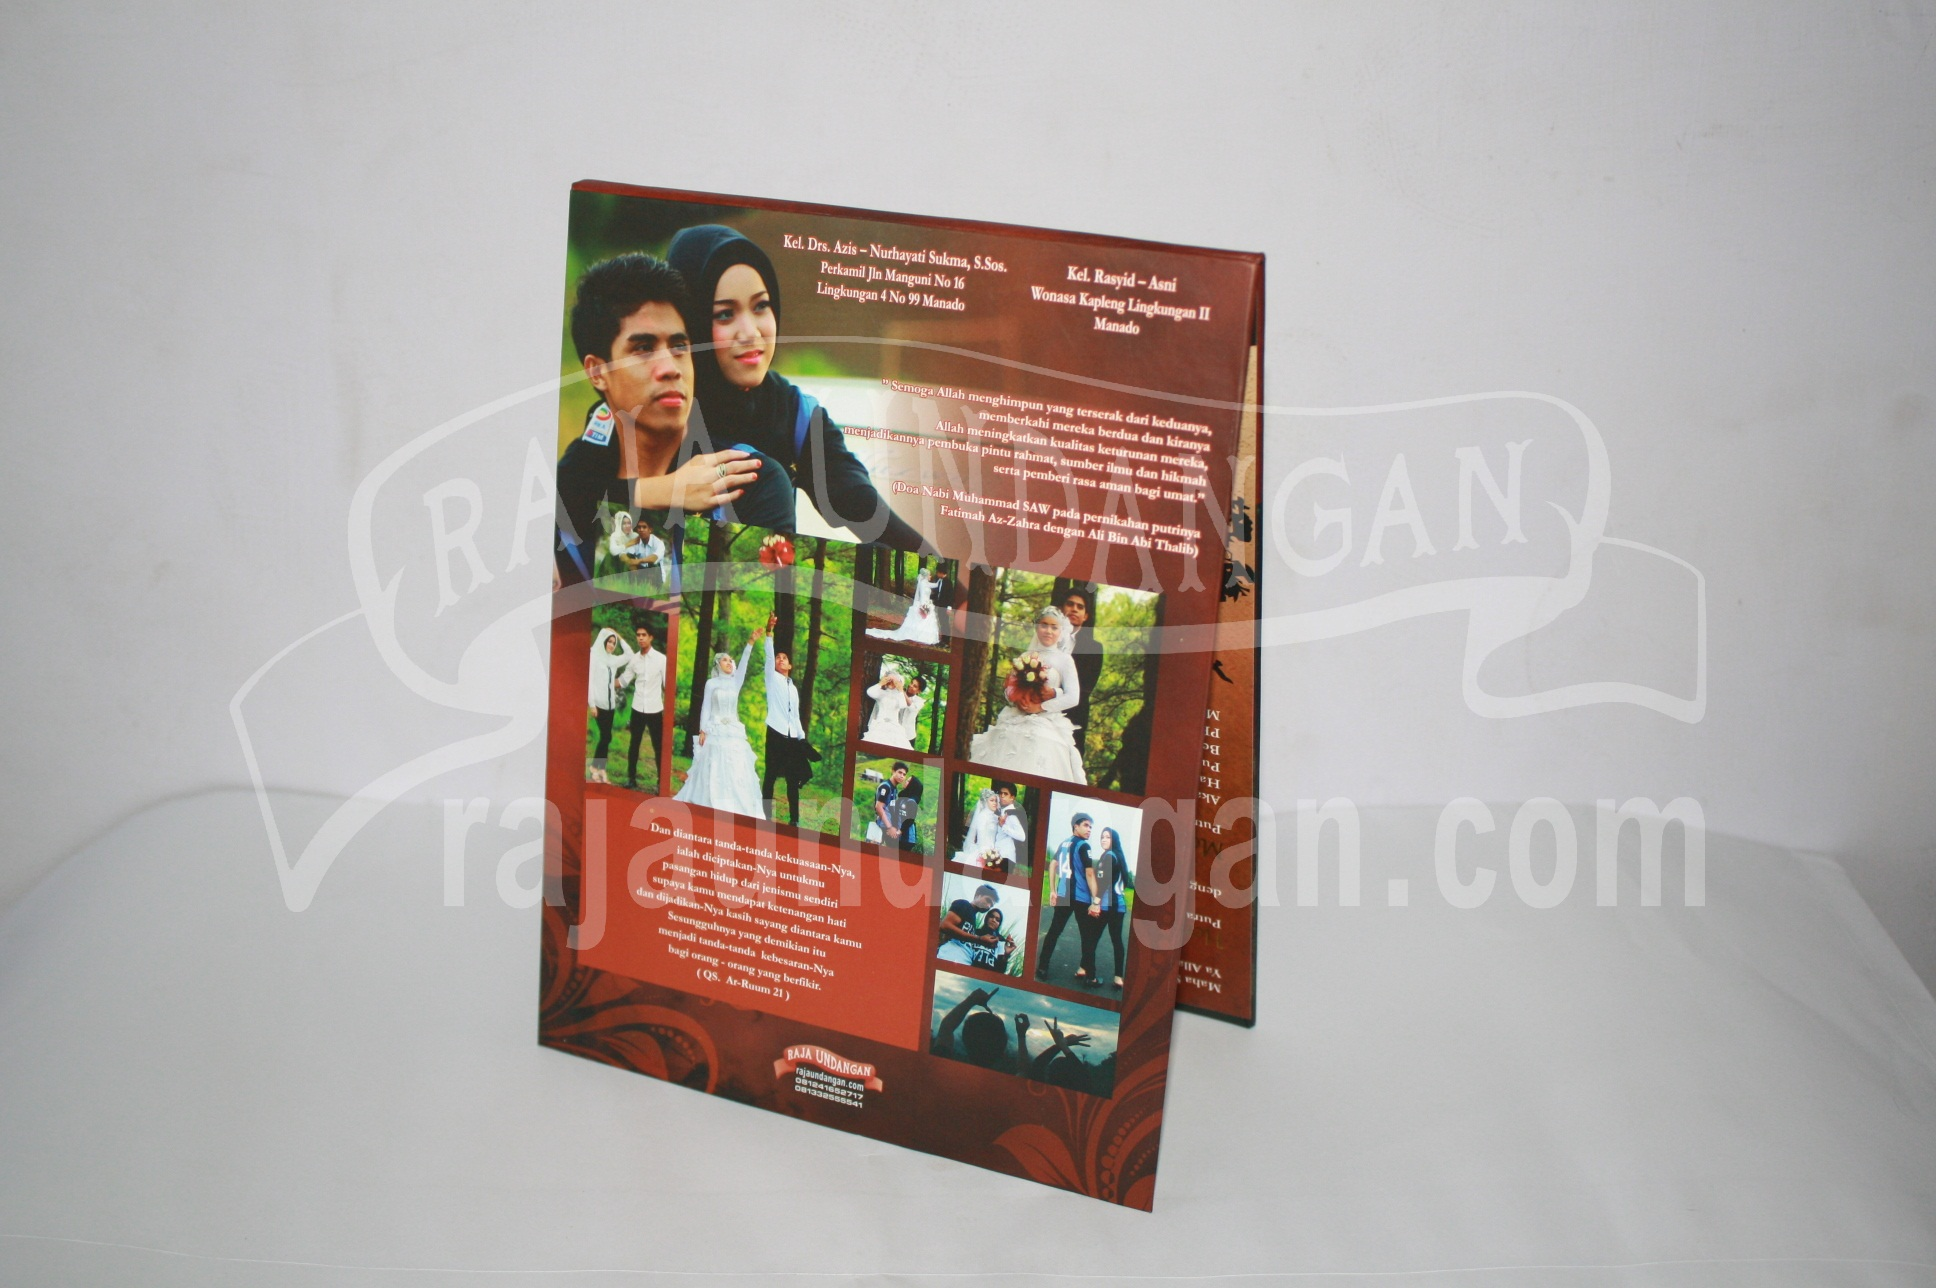 Undangan Pernikahan Hardcover Pop Up Heri dan Mona EDC 43 1 - Pesan Wedding Invitations Simple di Jambangan Karah